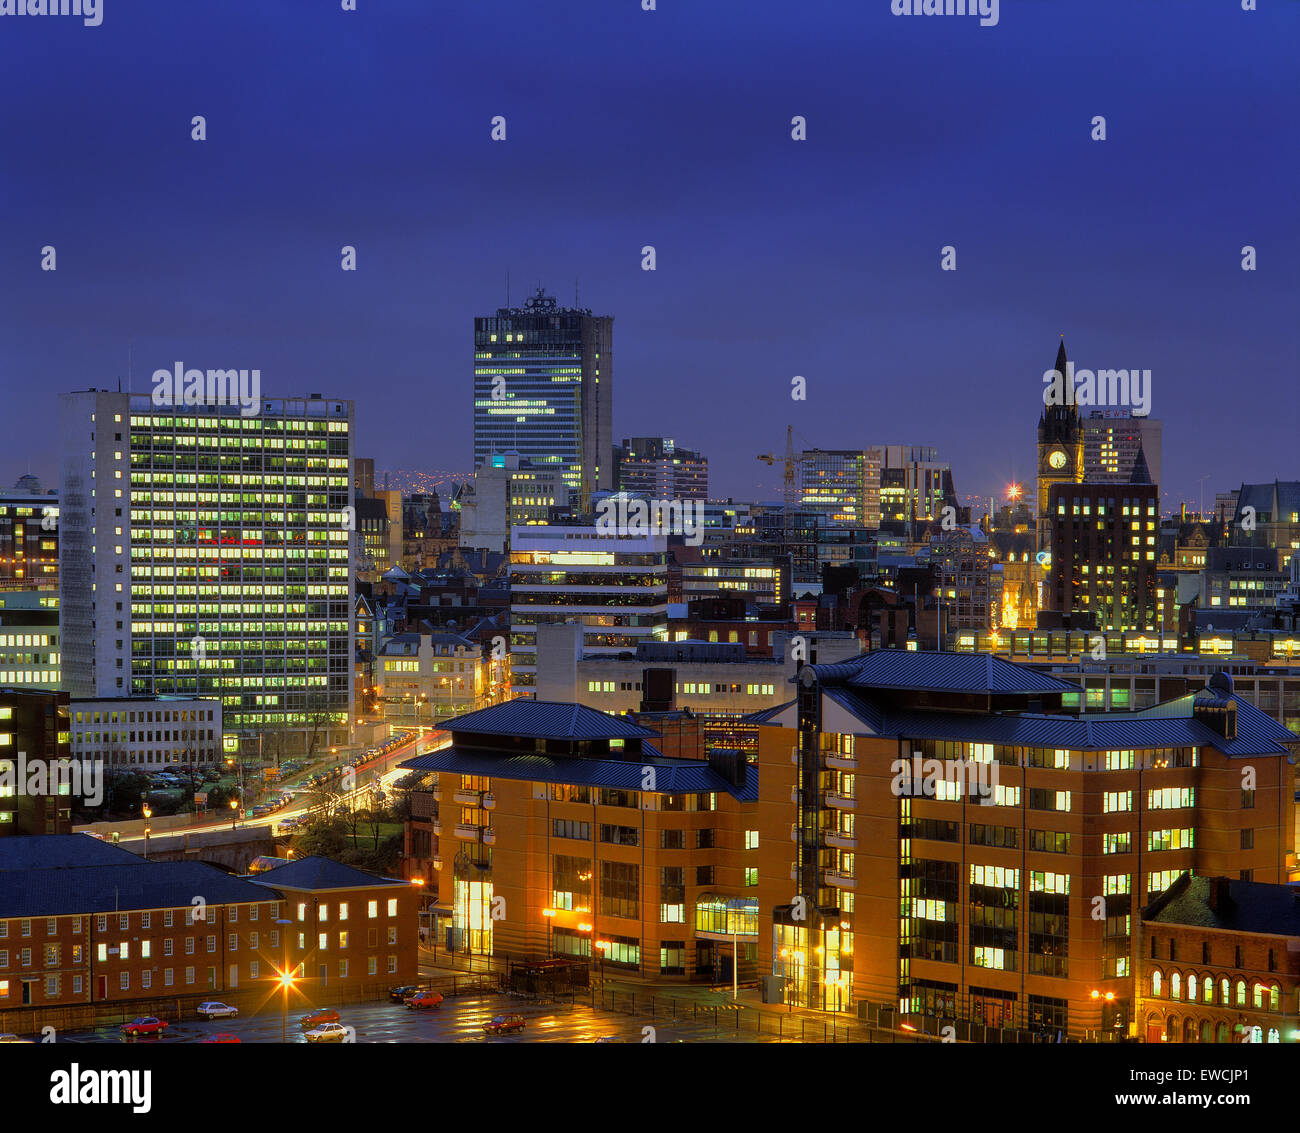 Skyline of Manchester town centre, Greater Manchester, England. Wider view can be seen on image ref: B8G2YE Stock Photo